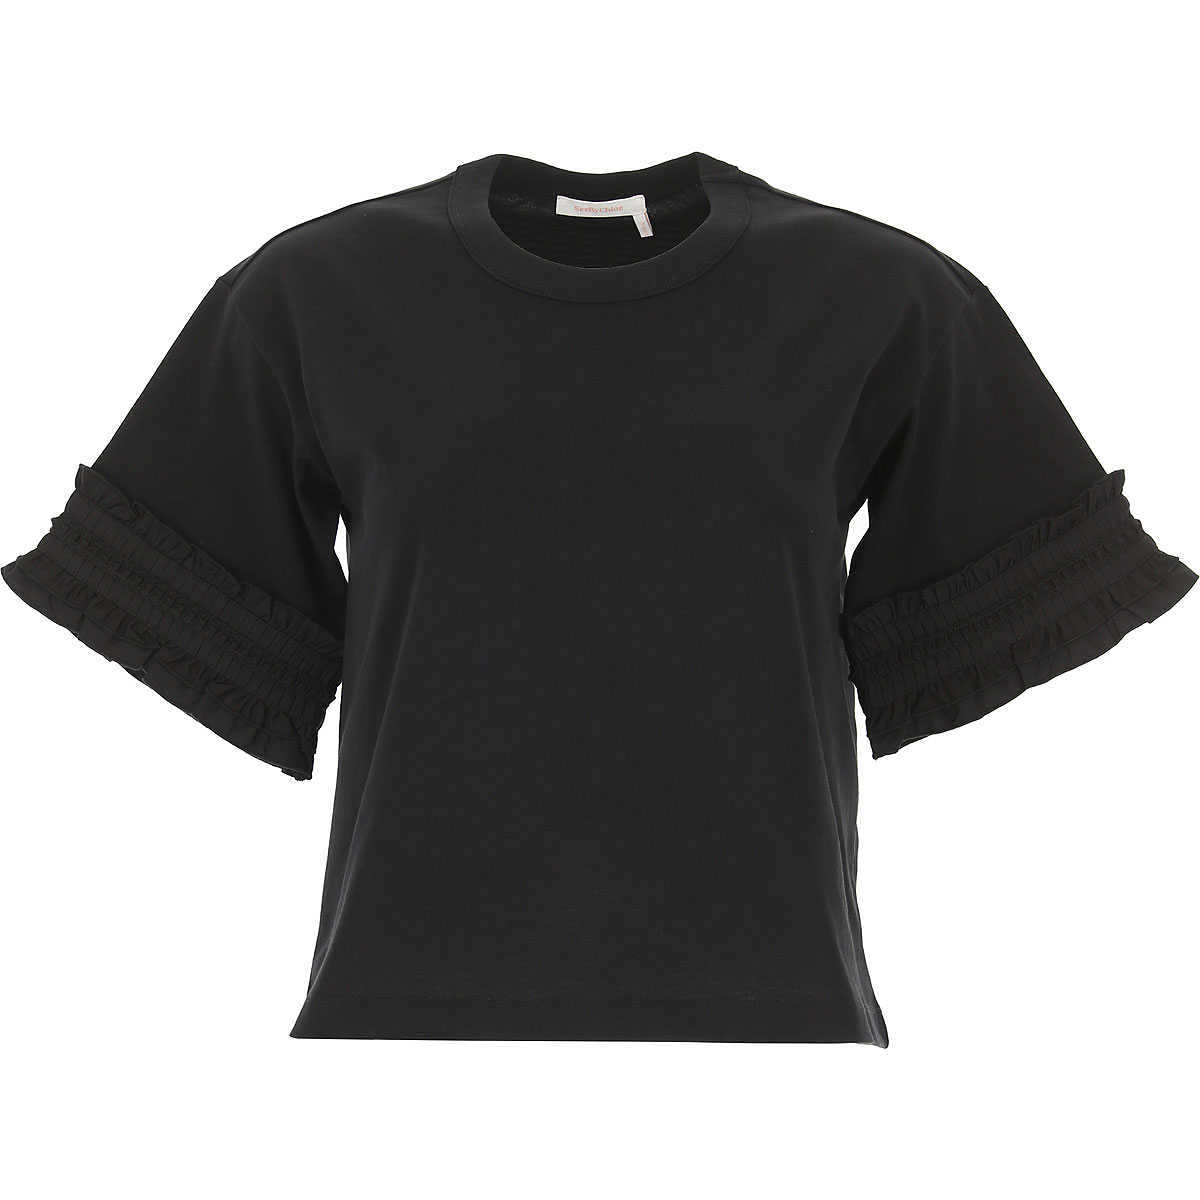 See By Chloe T-Shirt for Women On Sale Black DK - GOOFASH - Womens T-SHIRTS